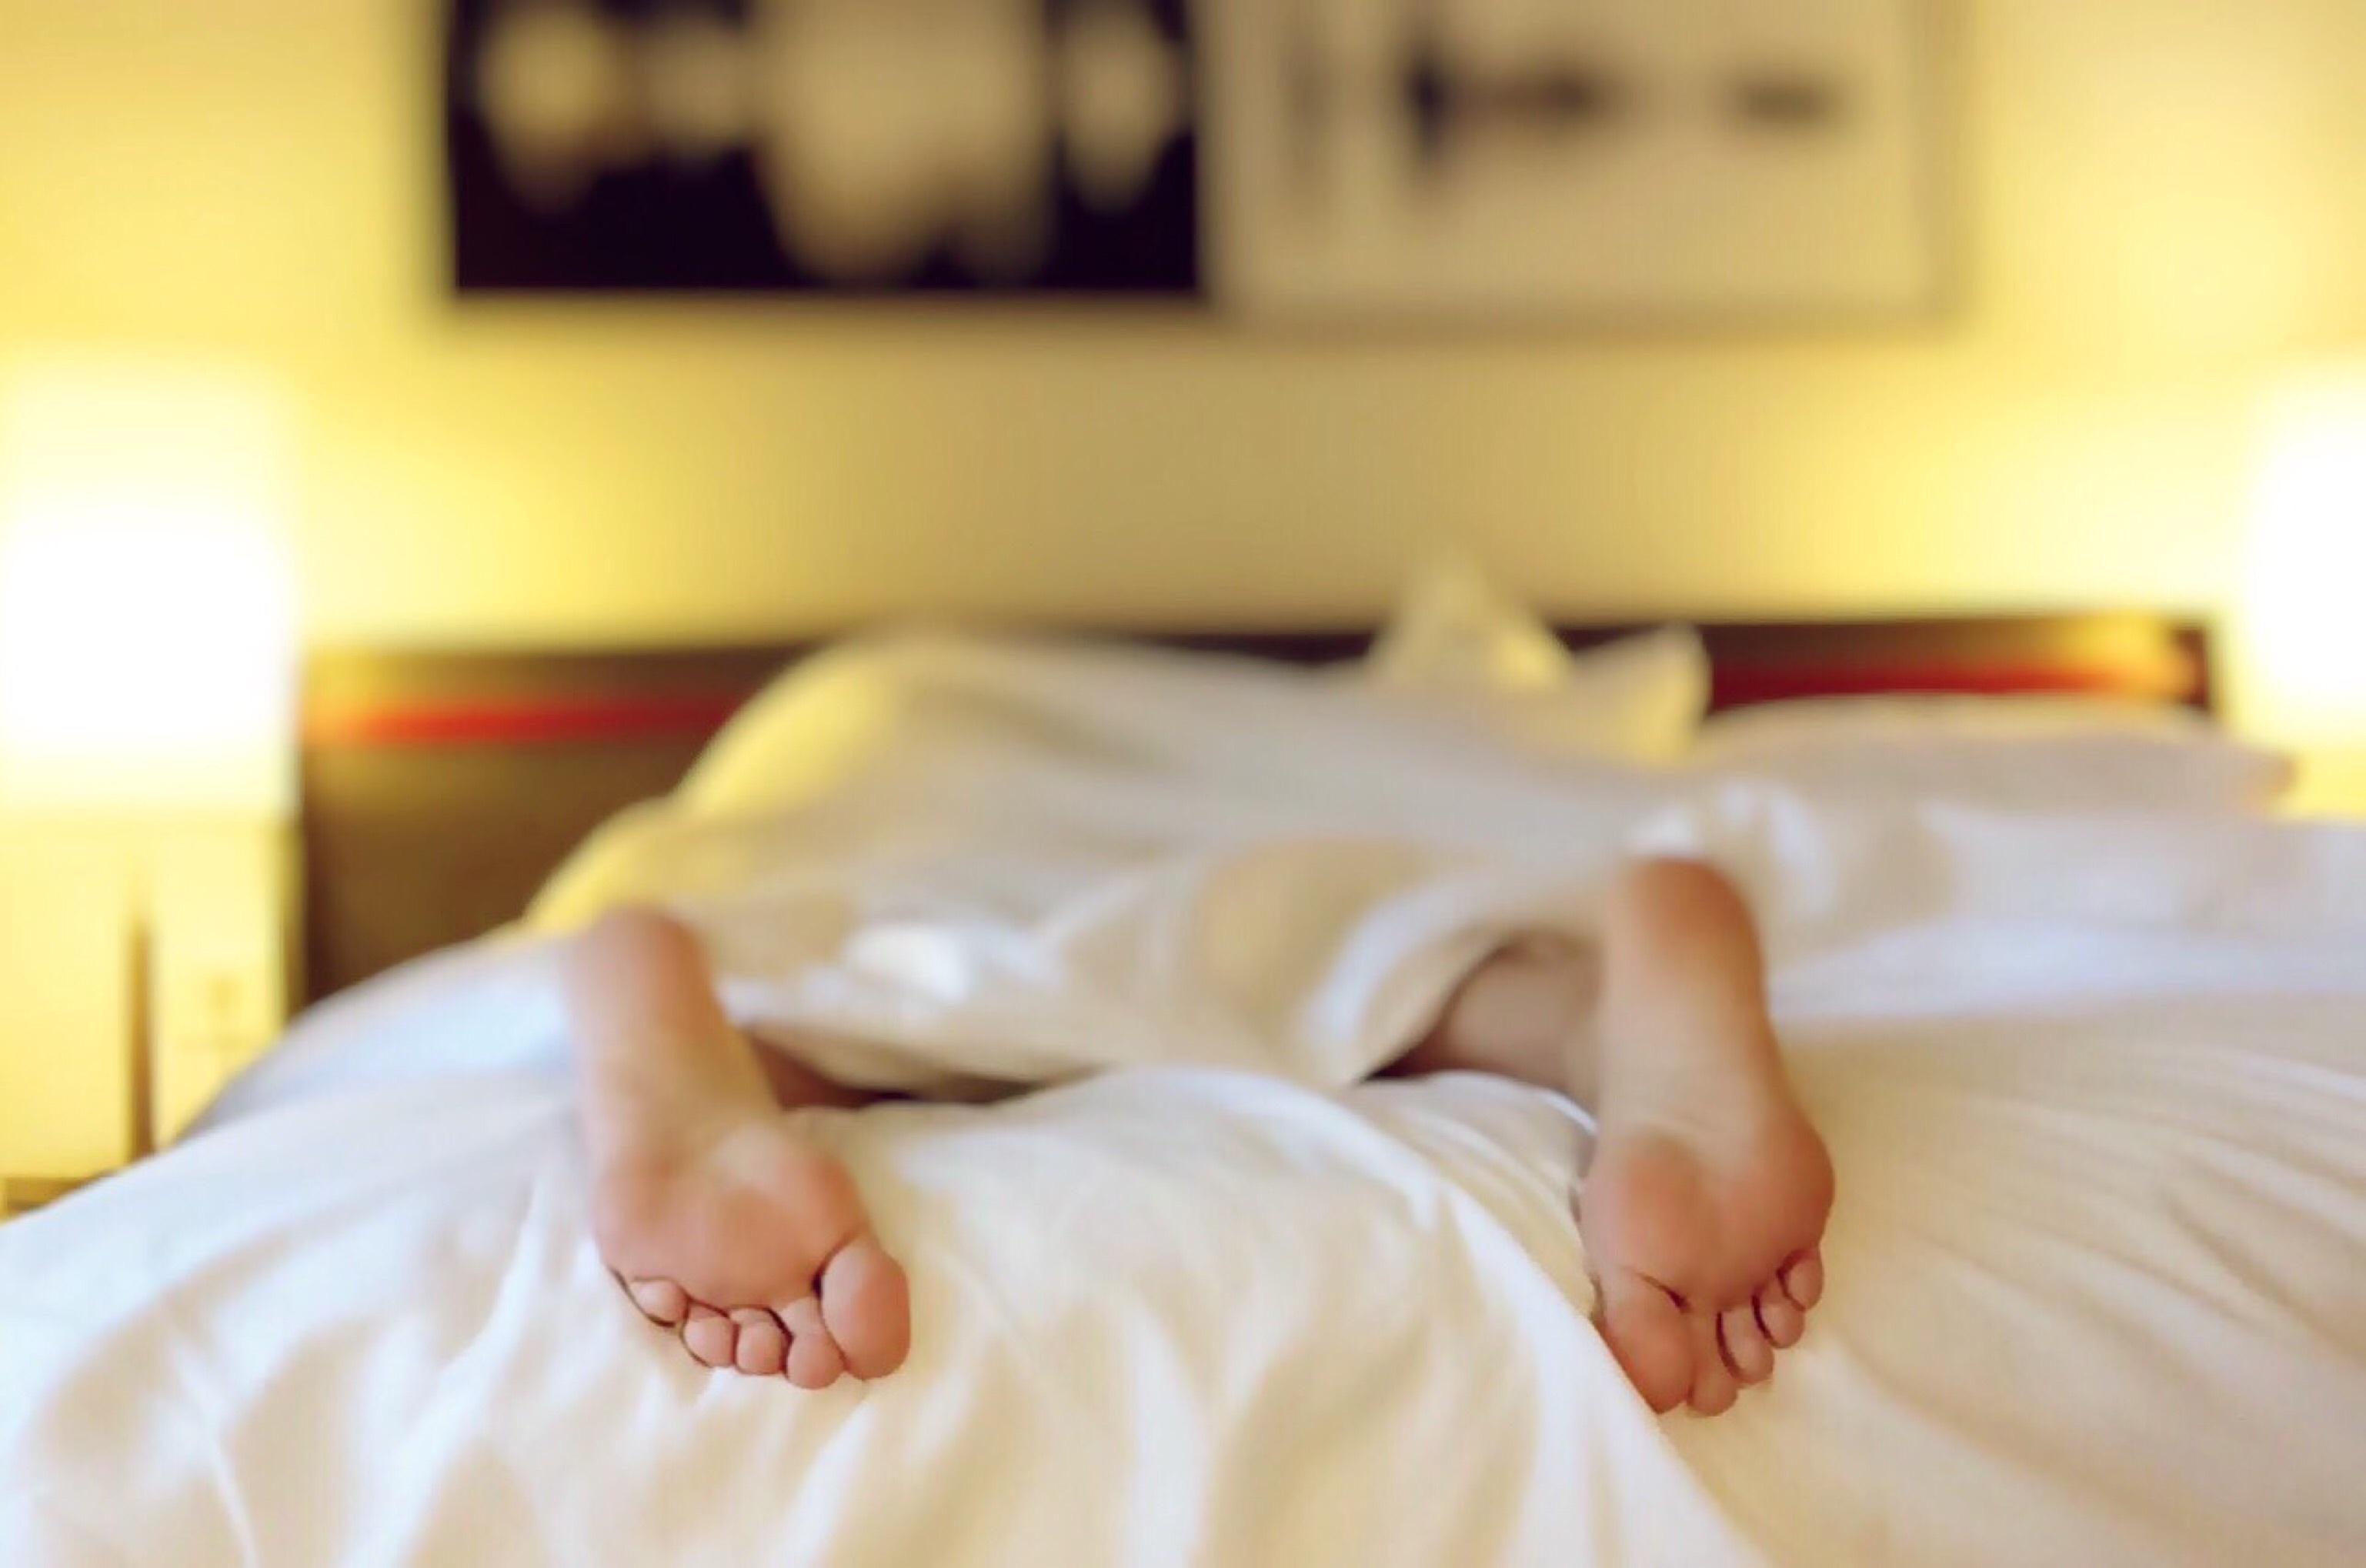 Feet poking out of white bed sheets